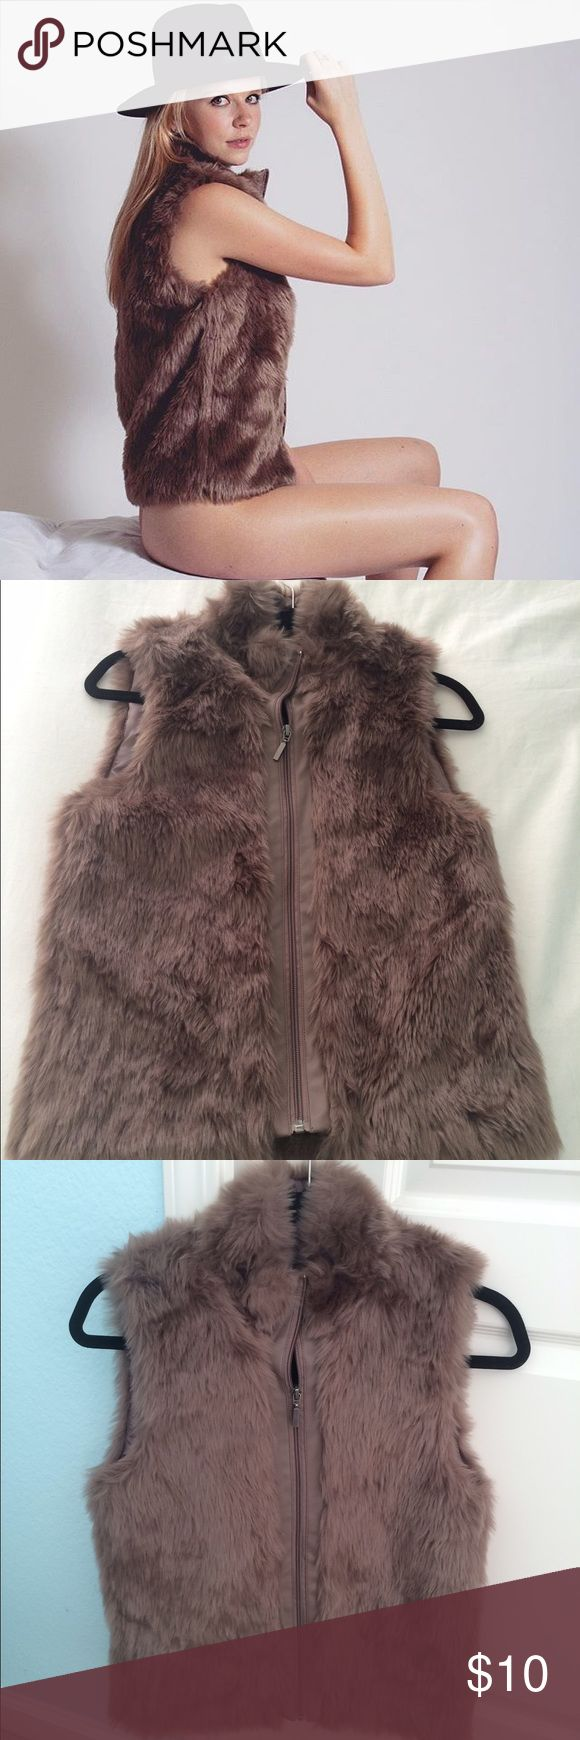 Brown faux fur primark vest Worn once for a photoshoot but still new with tags. Original price €15 atmosphere Jackets & Coats Vests